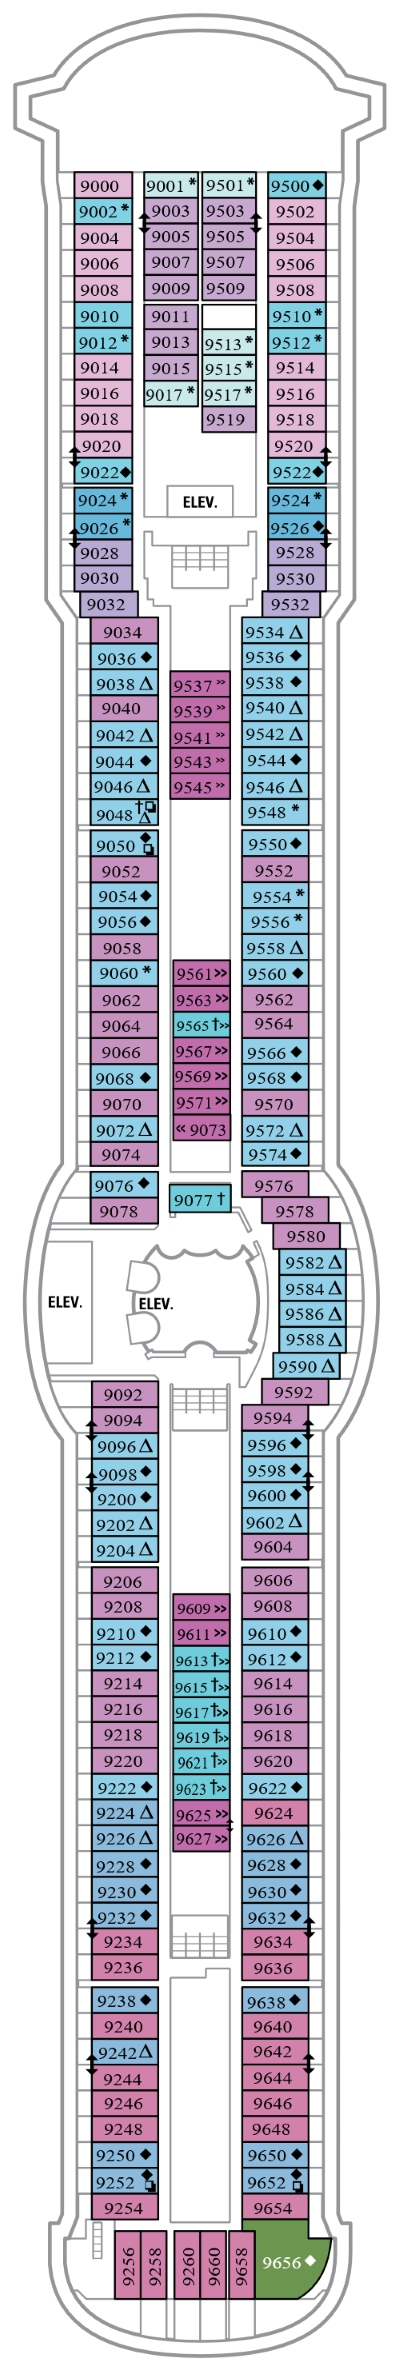 Jewel Of The Seas Deck 9 layout